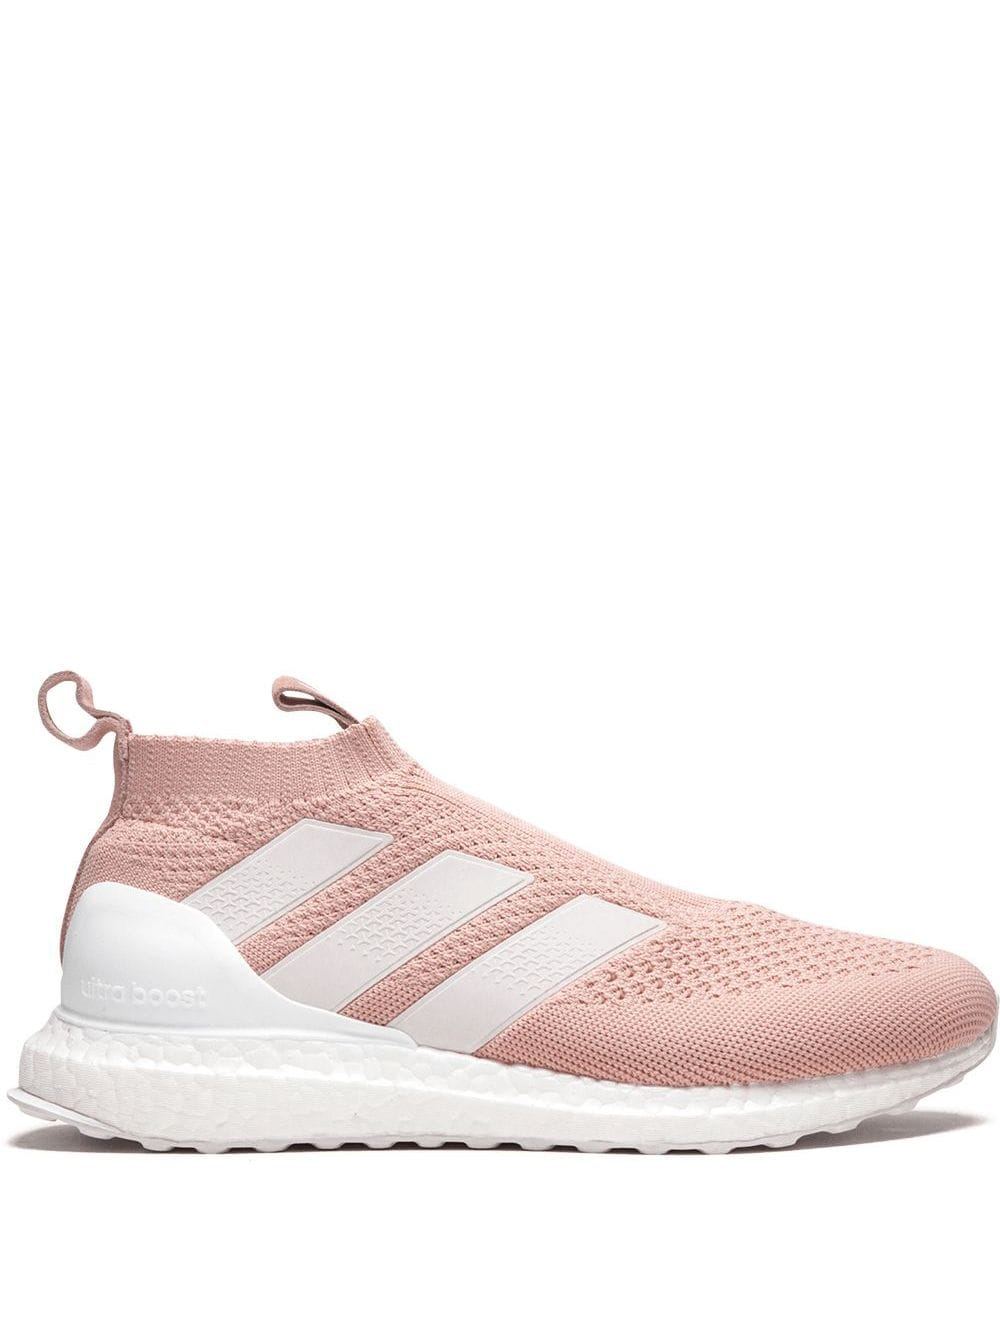 adidas Ace 16+ Kith UltraBoost sneakers - PINK von adidas